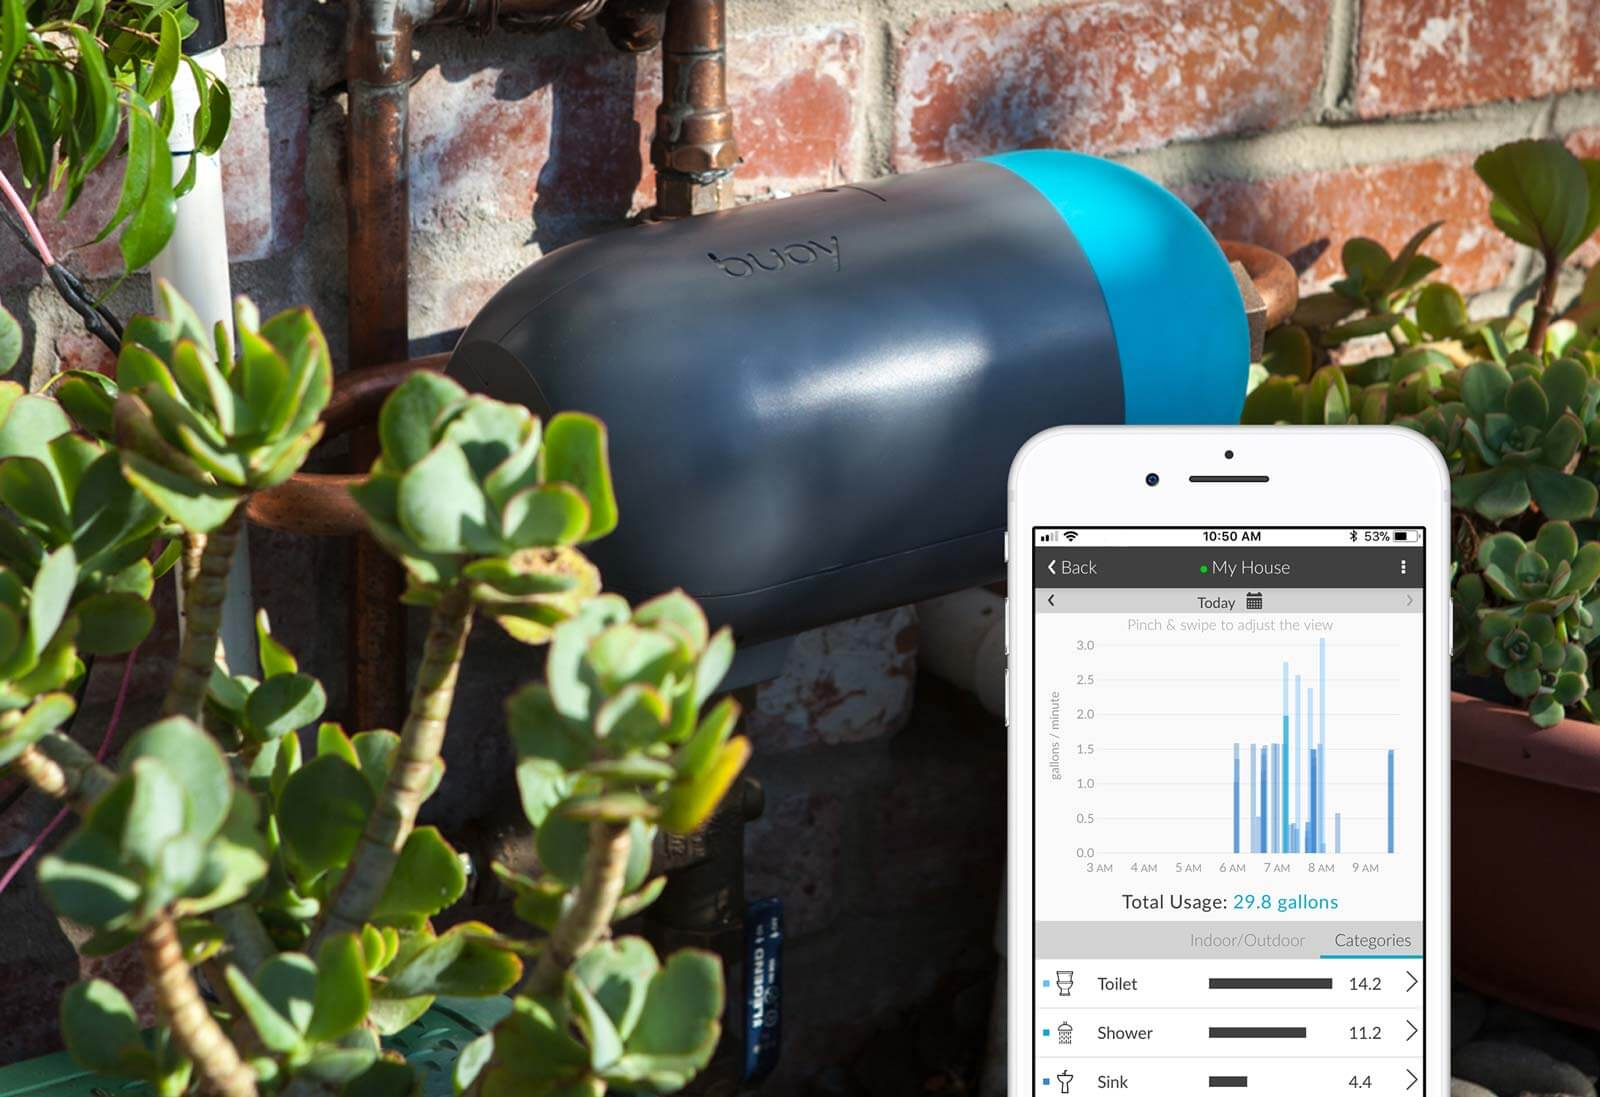 The Resideo's Buoy® connected water monitoring system outside